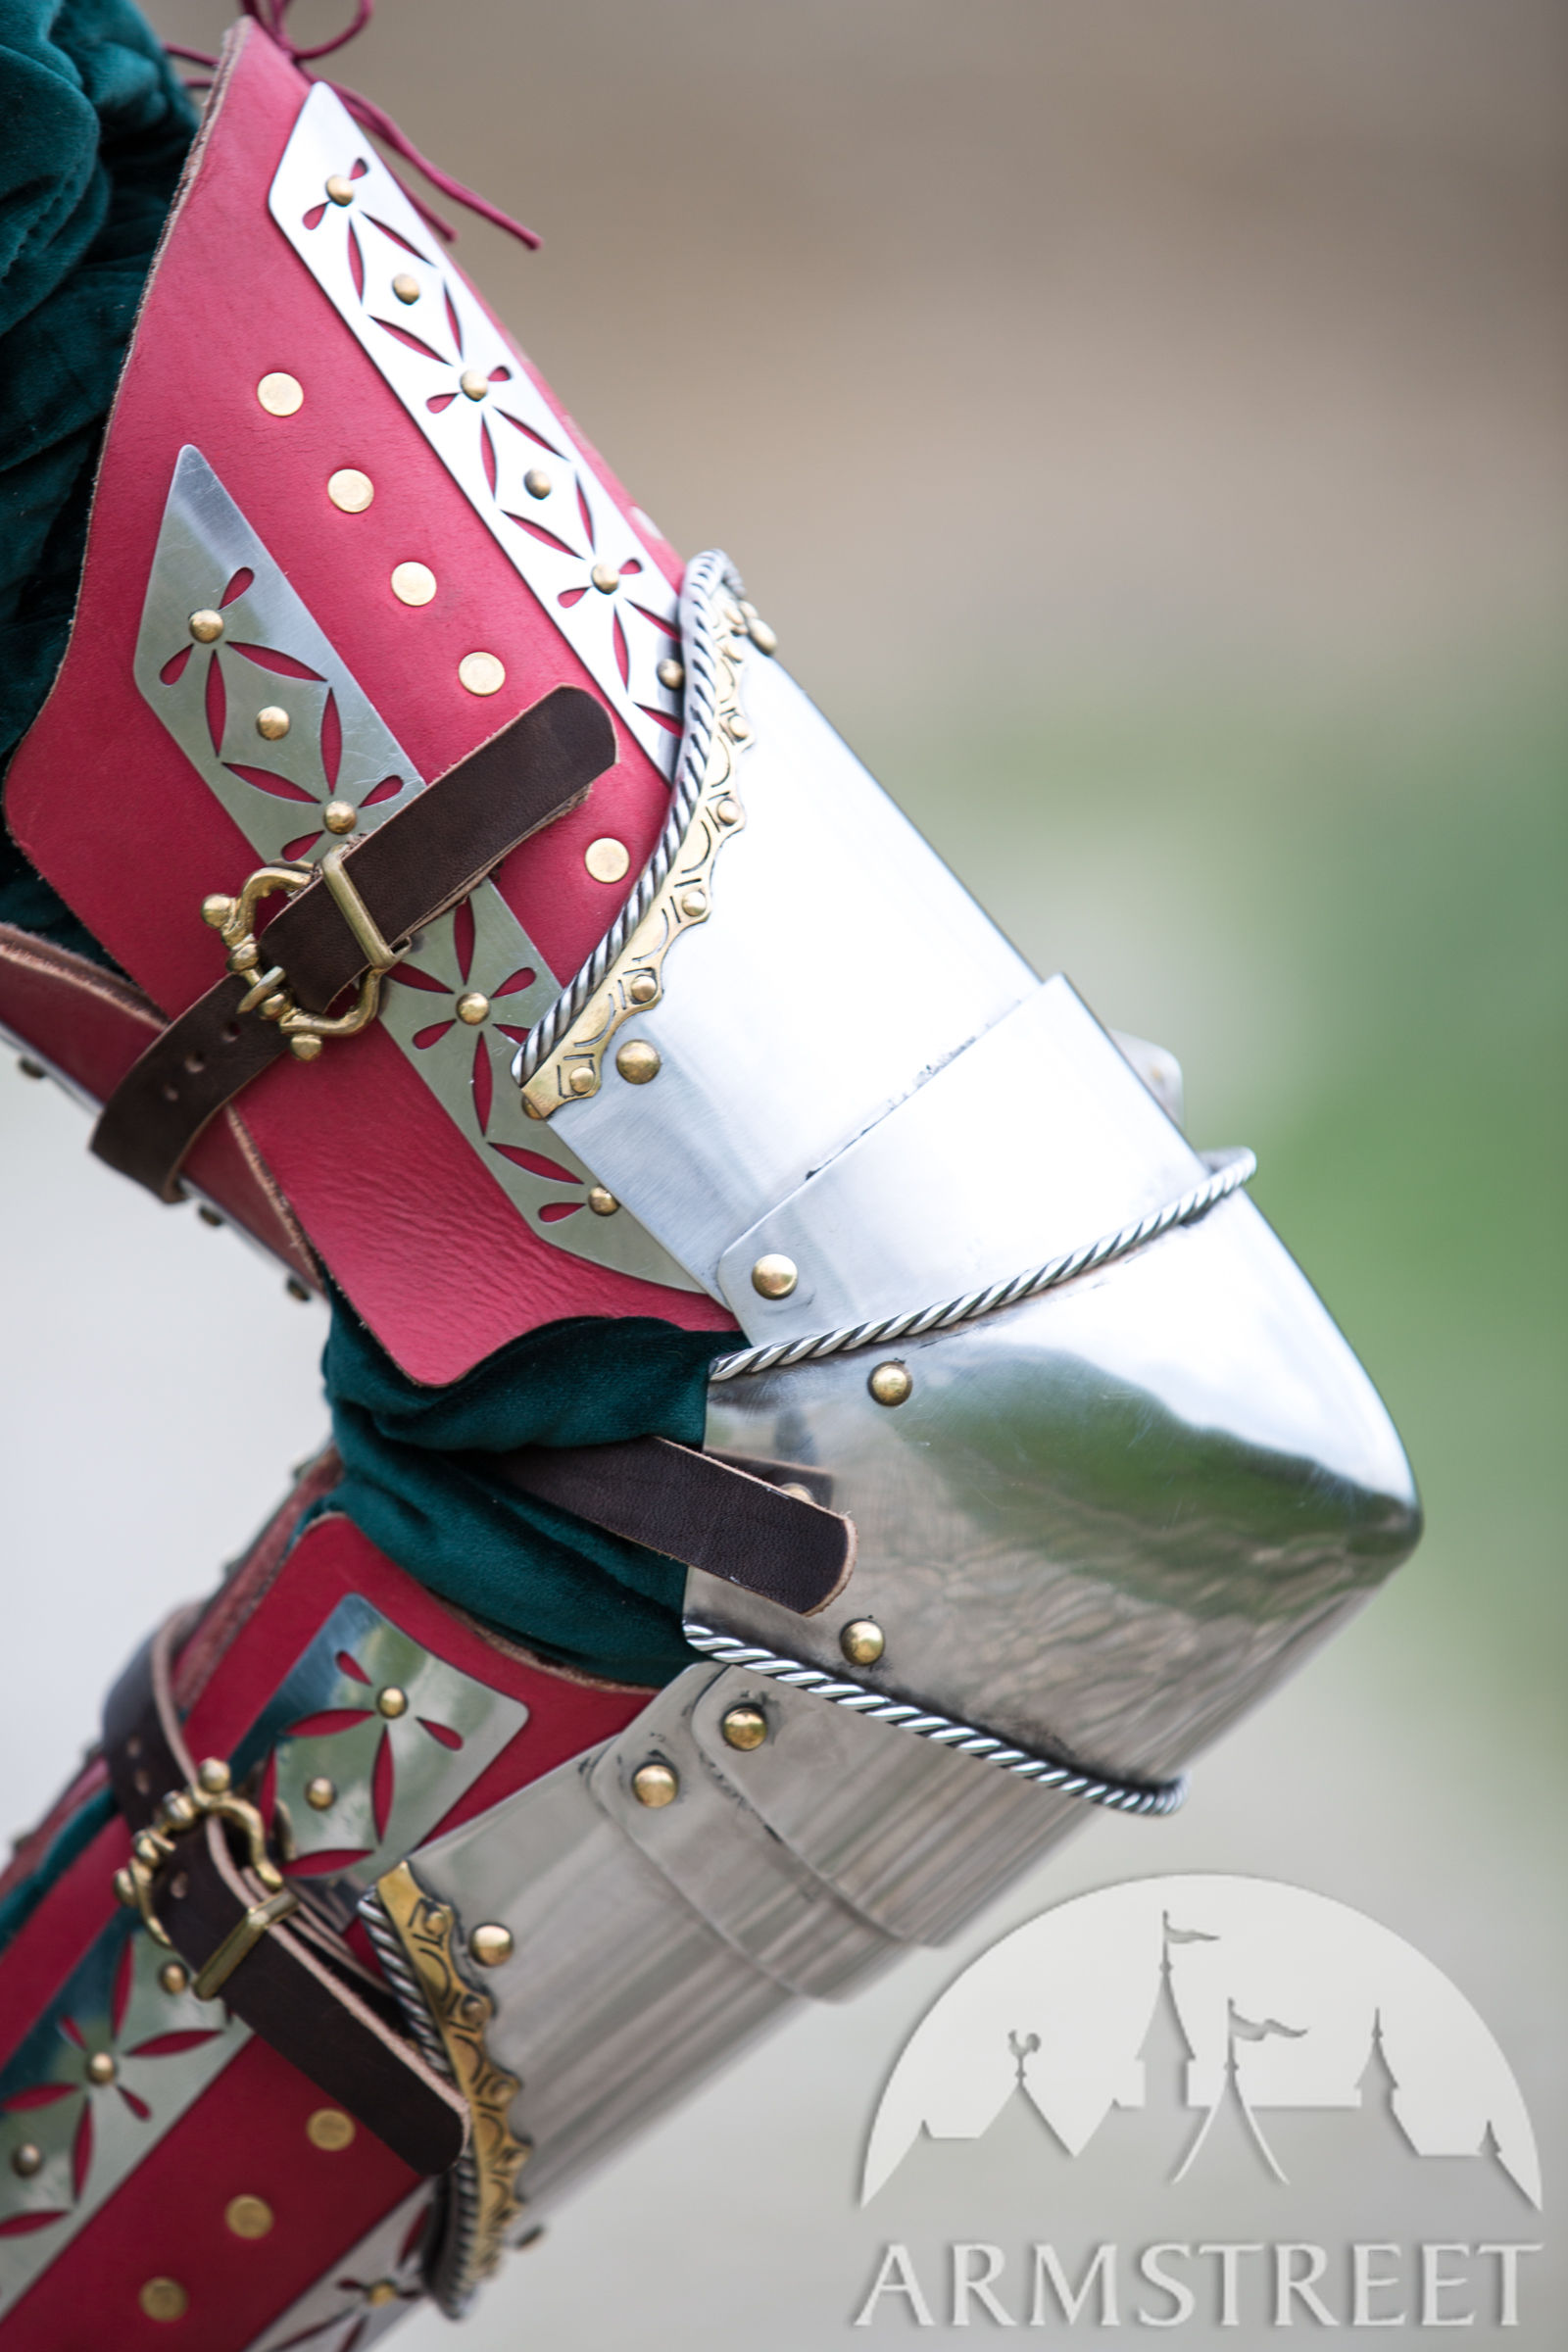 close up of the kingmaker arm armour